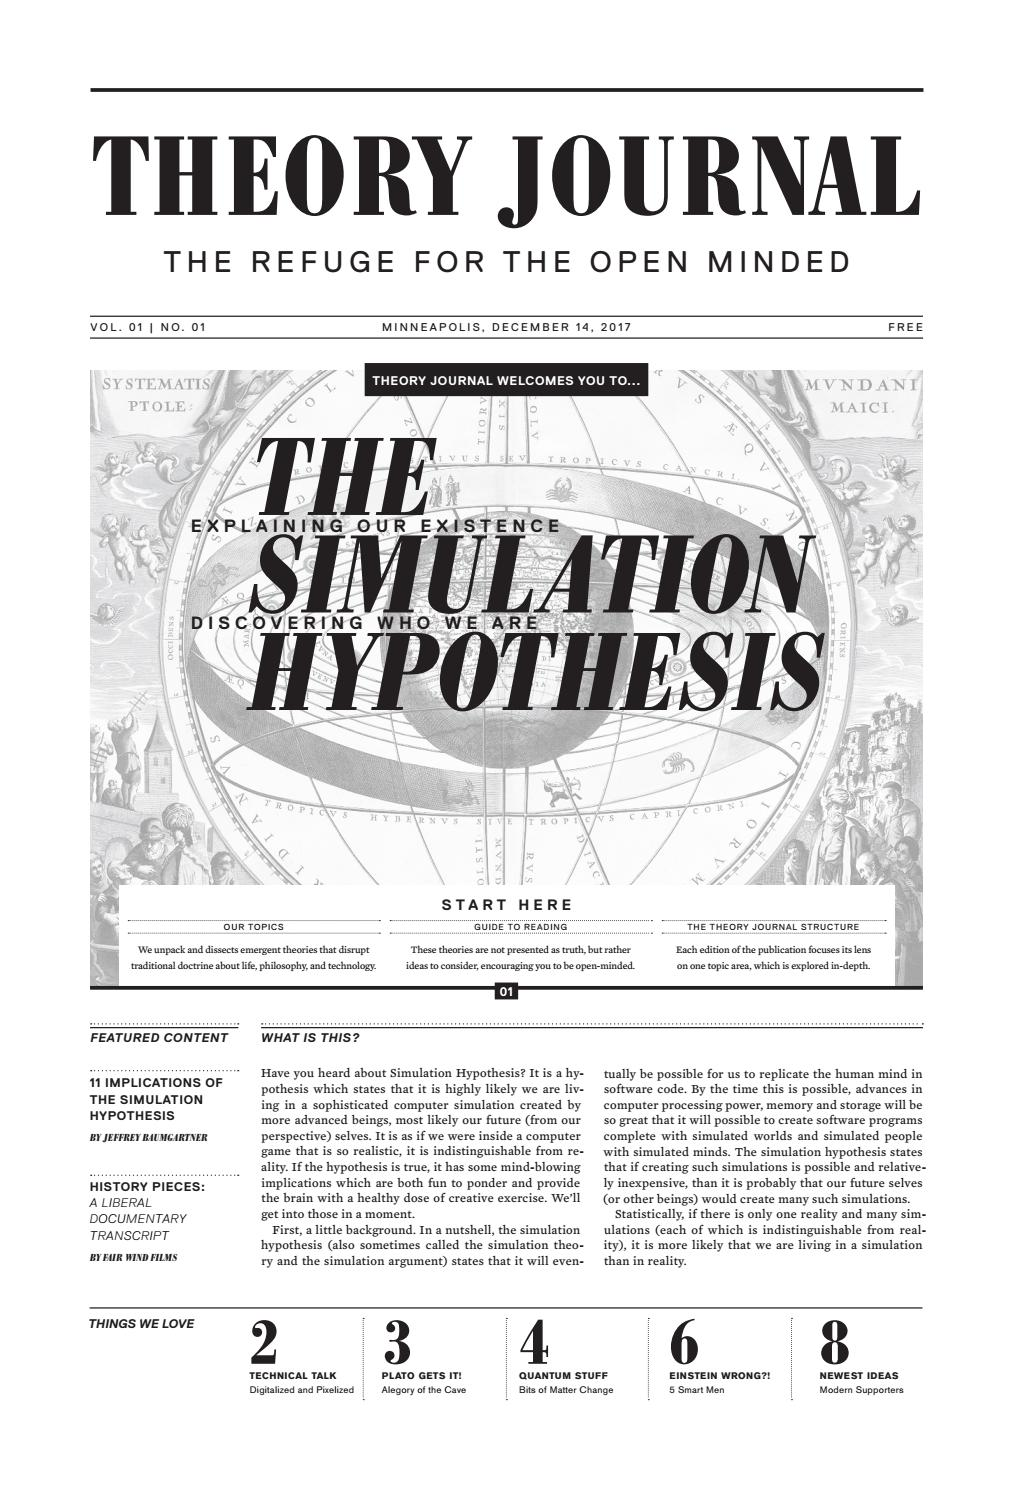 Simulation hypothesis